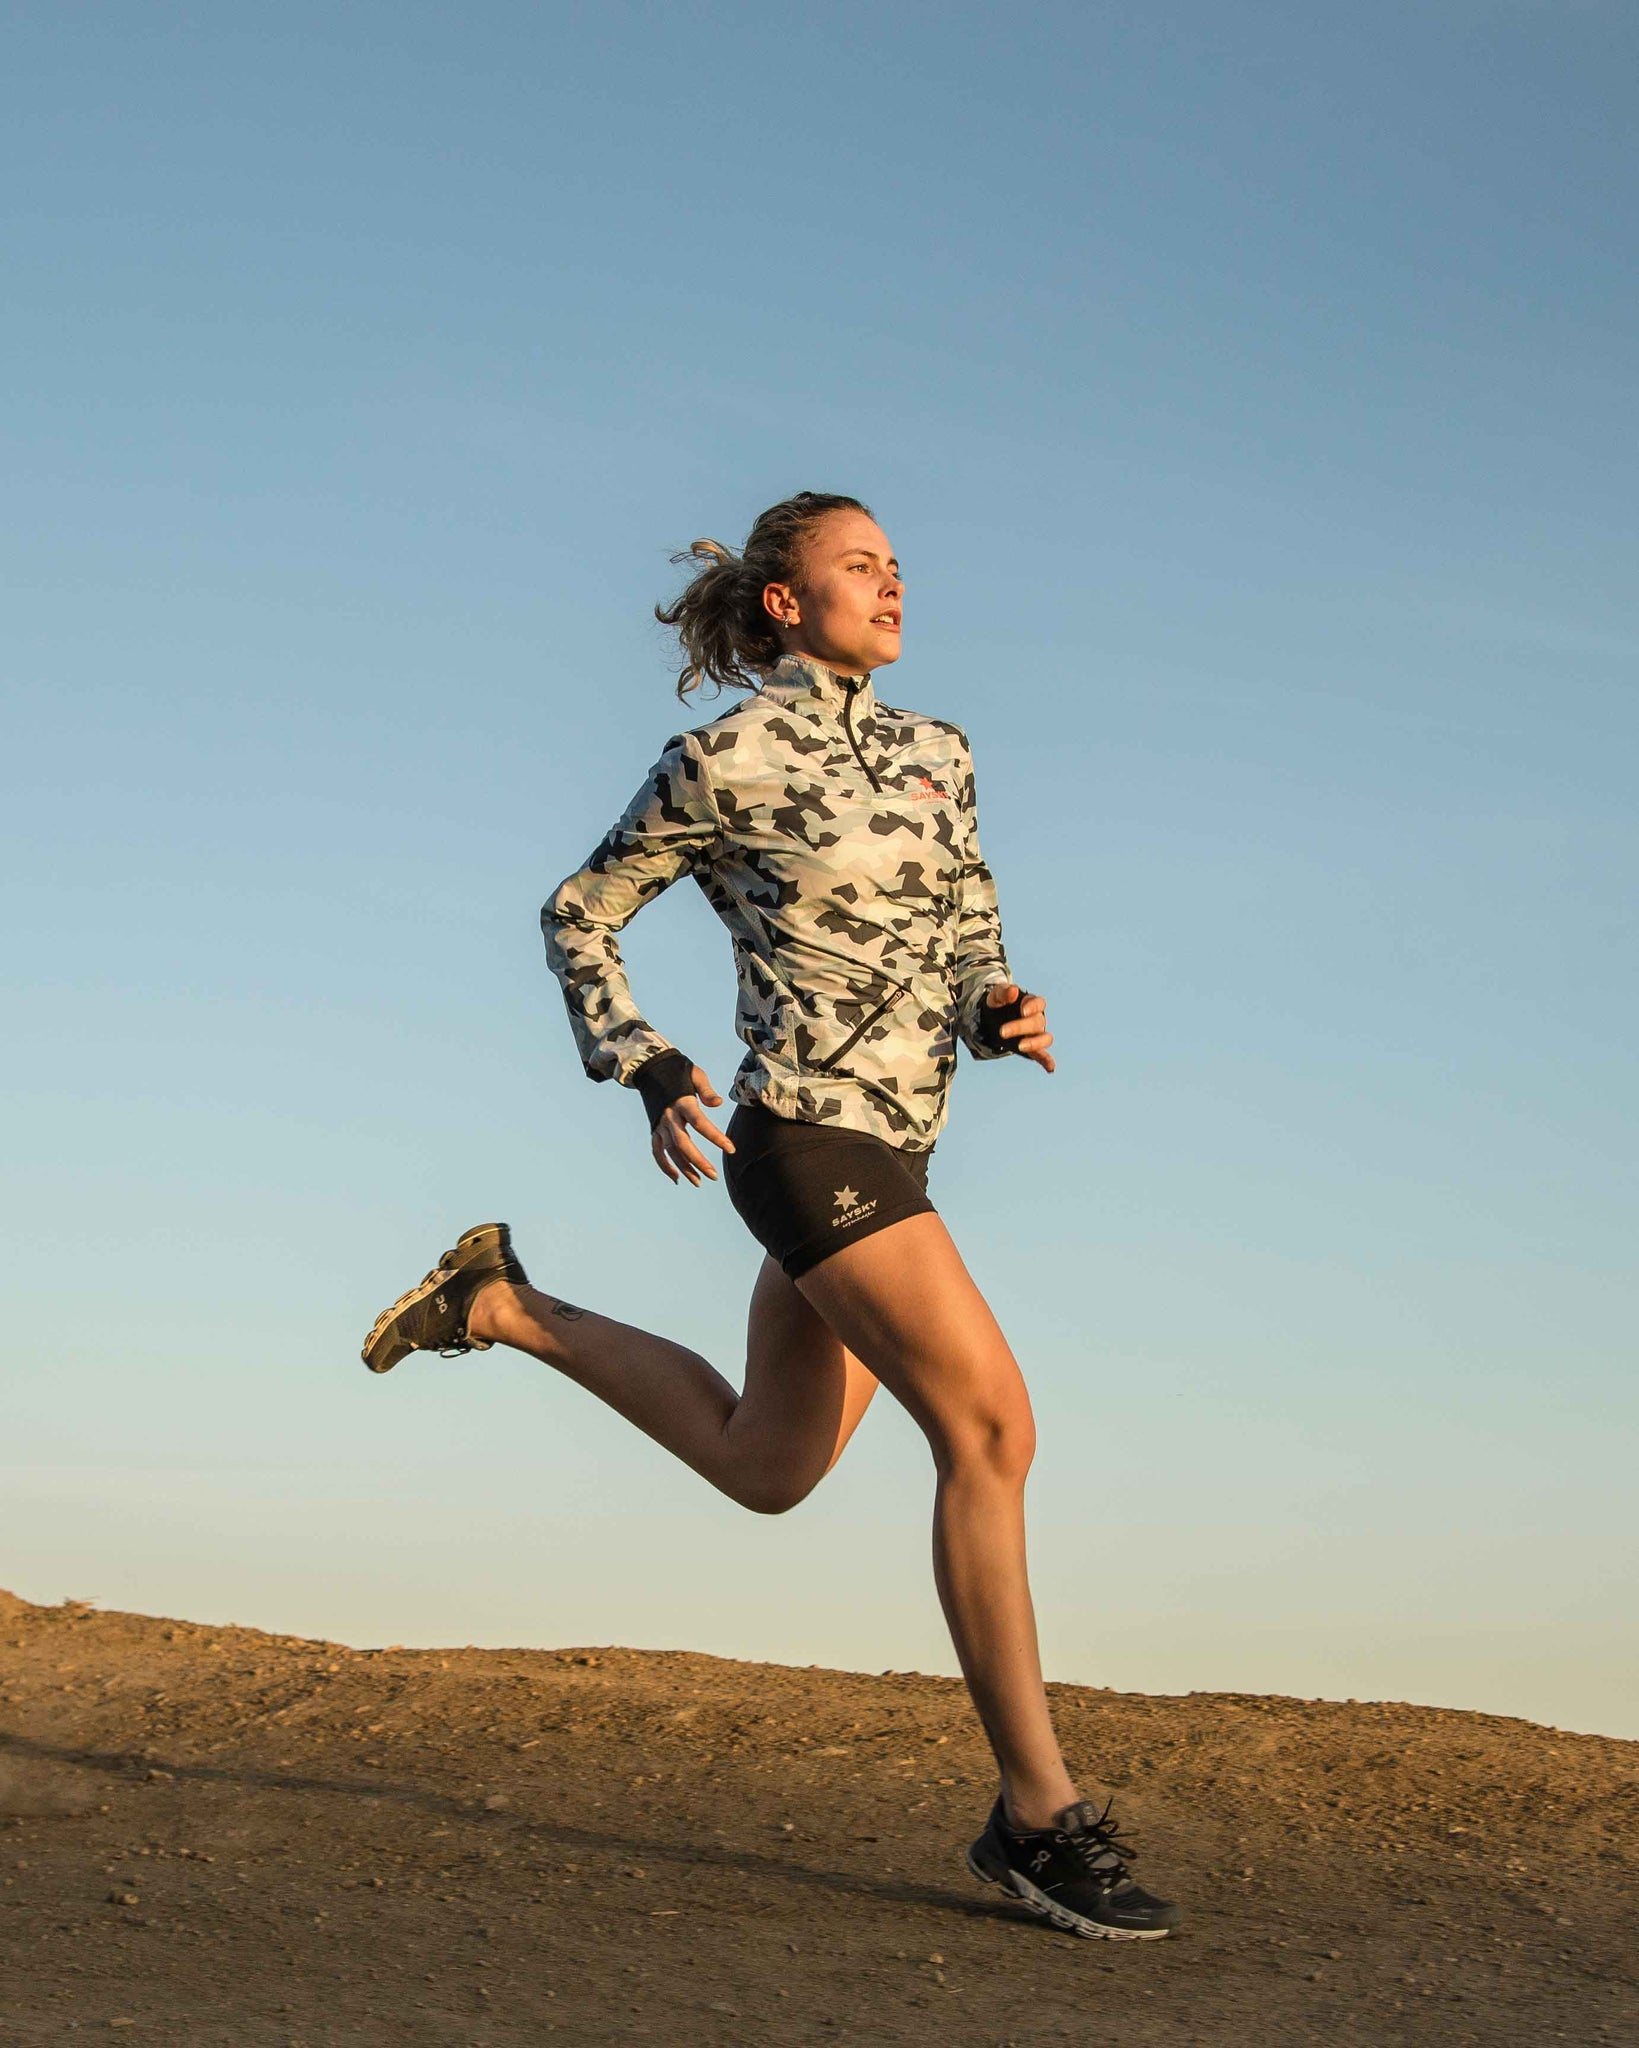 SAYSKY Camouflage running gear